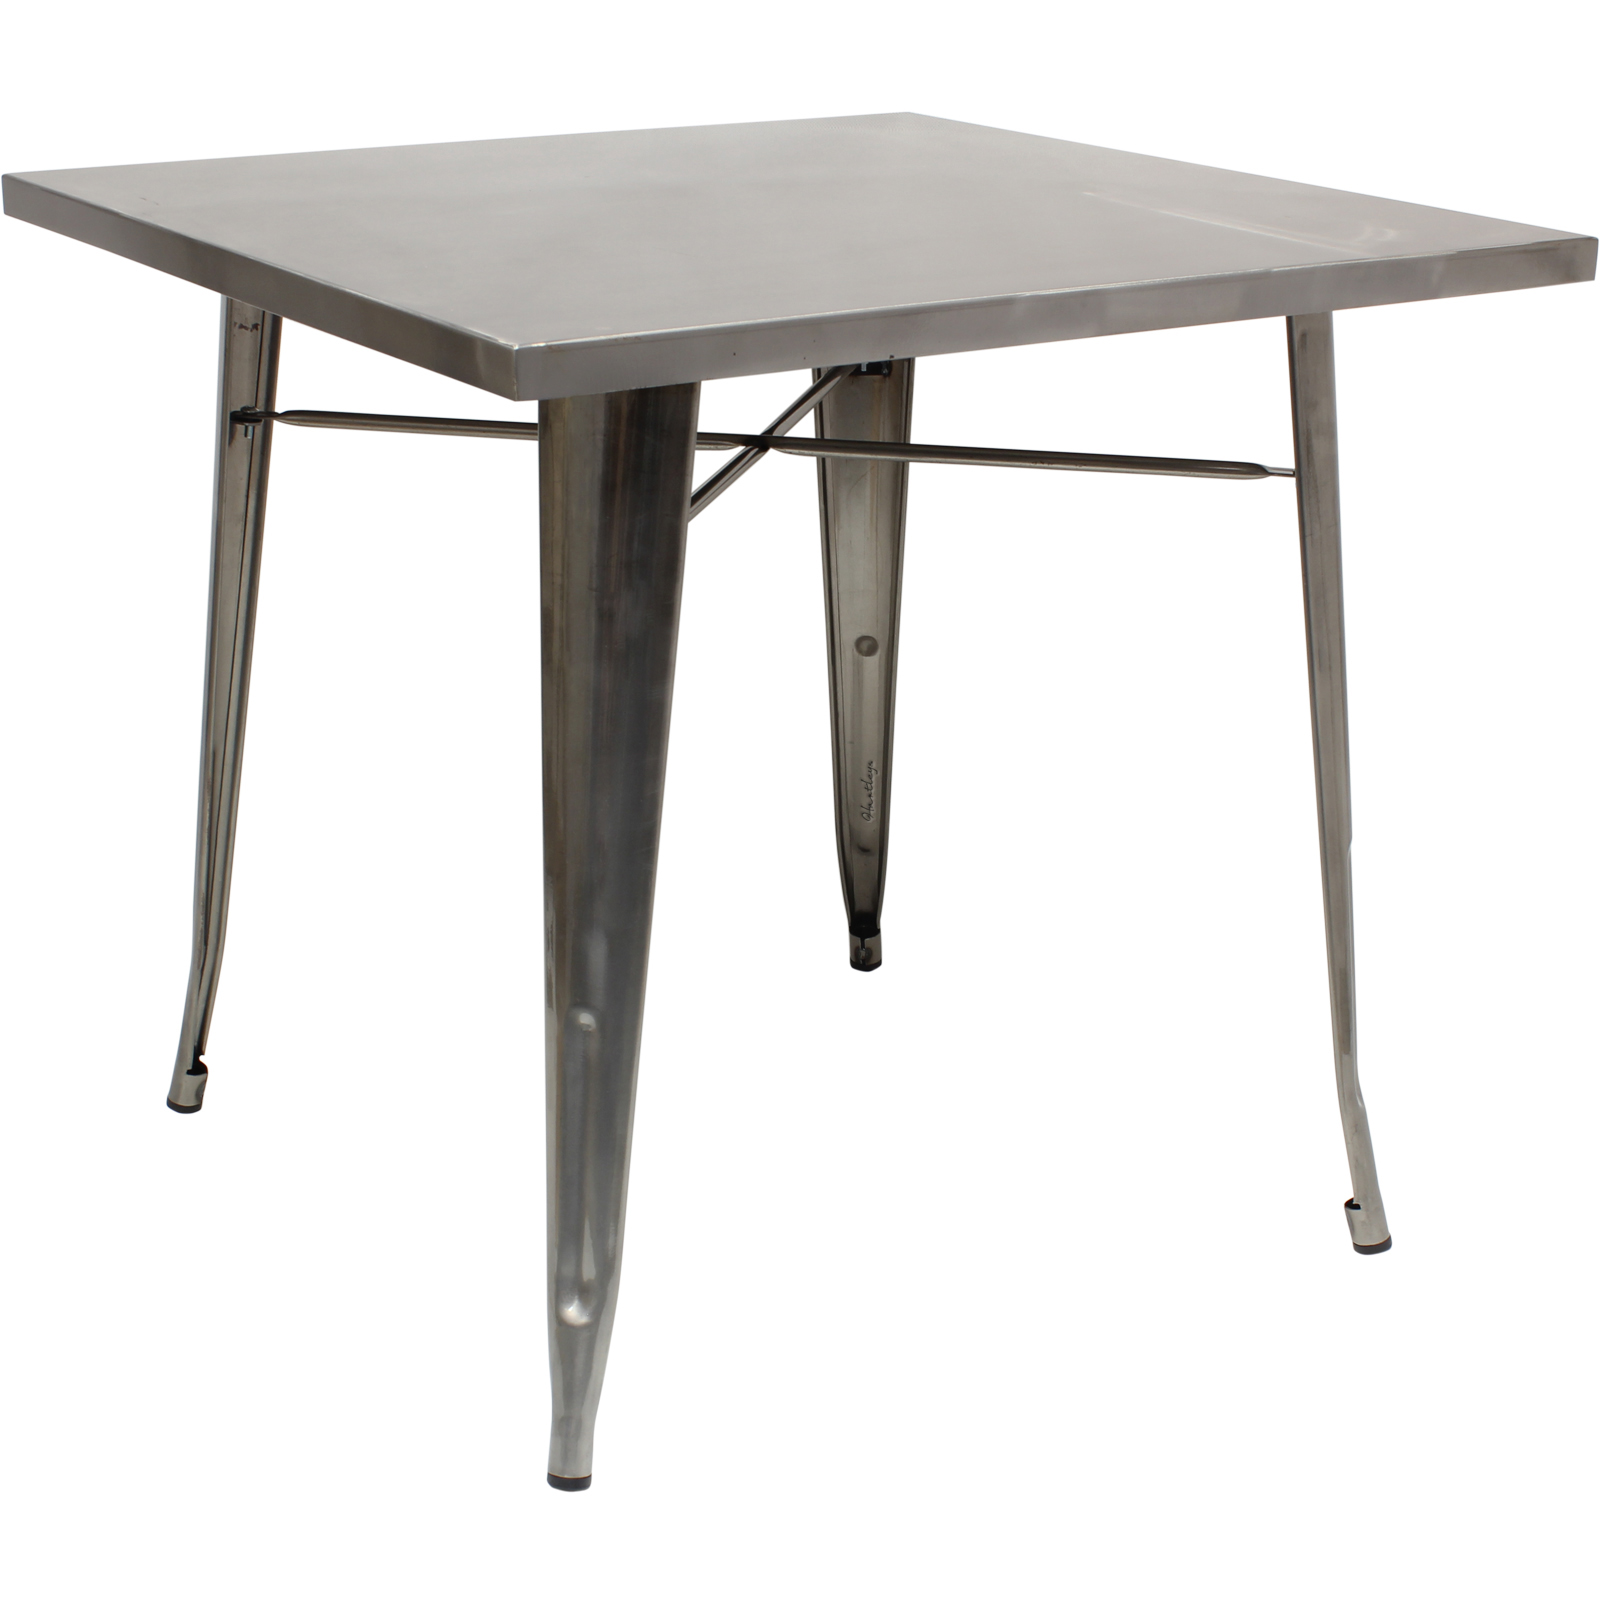 Hartleys large gunmetal square industrial metal table kitchen dining cafe bistro - Industrial kitchen tables ...